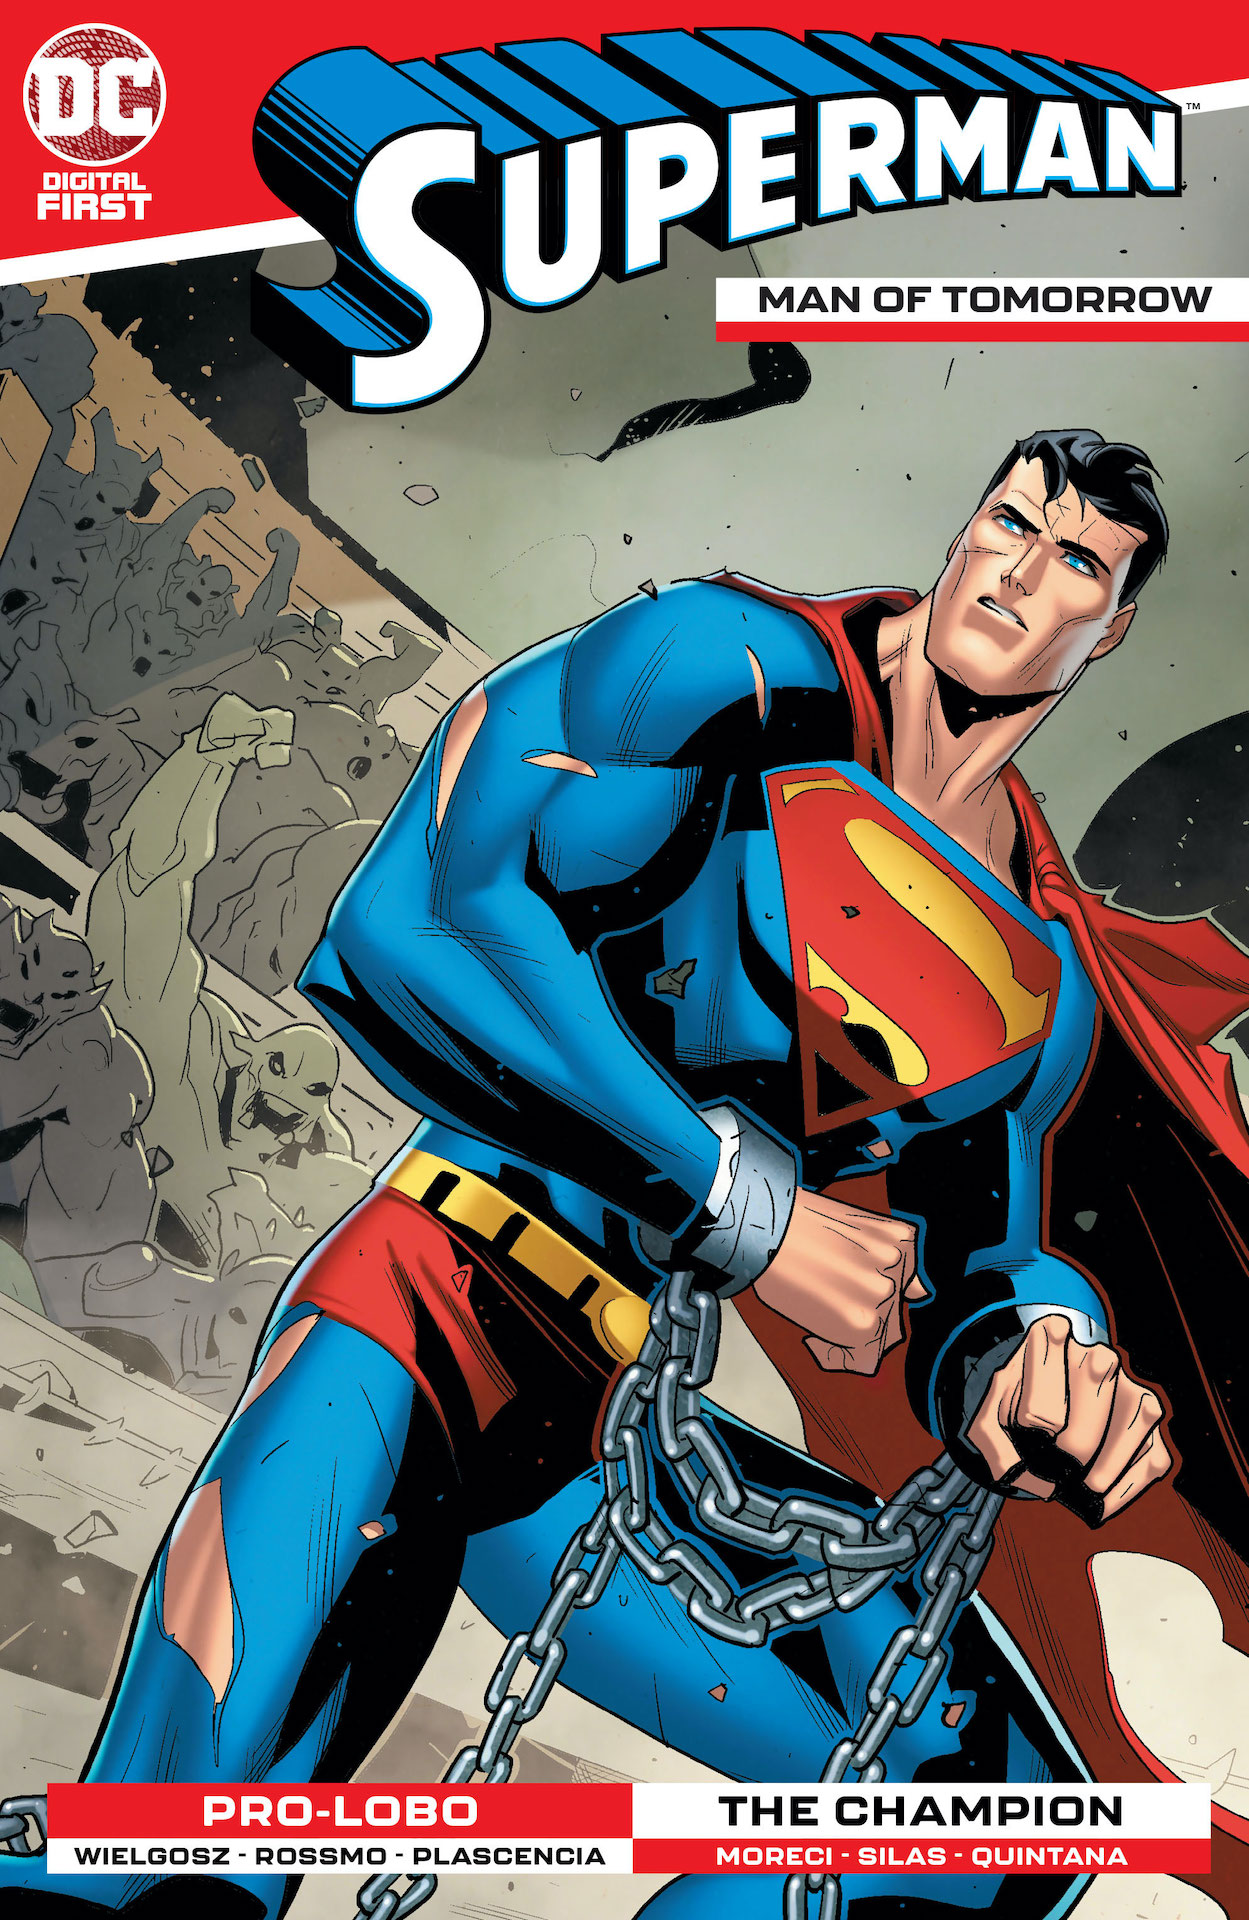 Superman wakes up in chains and doesn't know where he is.